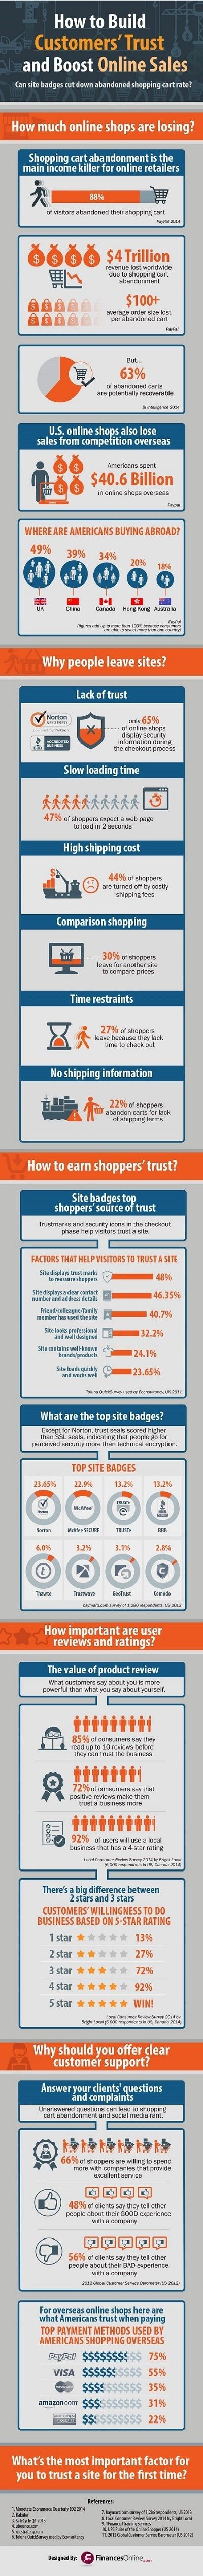 How to Build Customers' Trust and Boost Online Sales [Infographic]